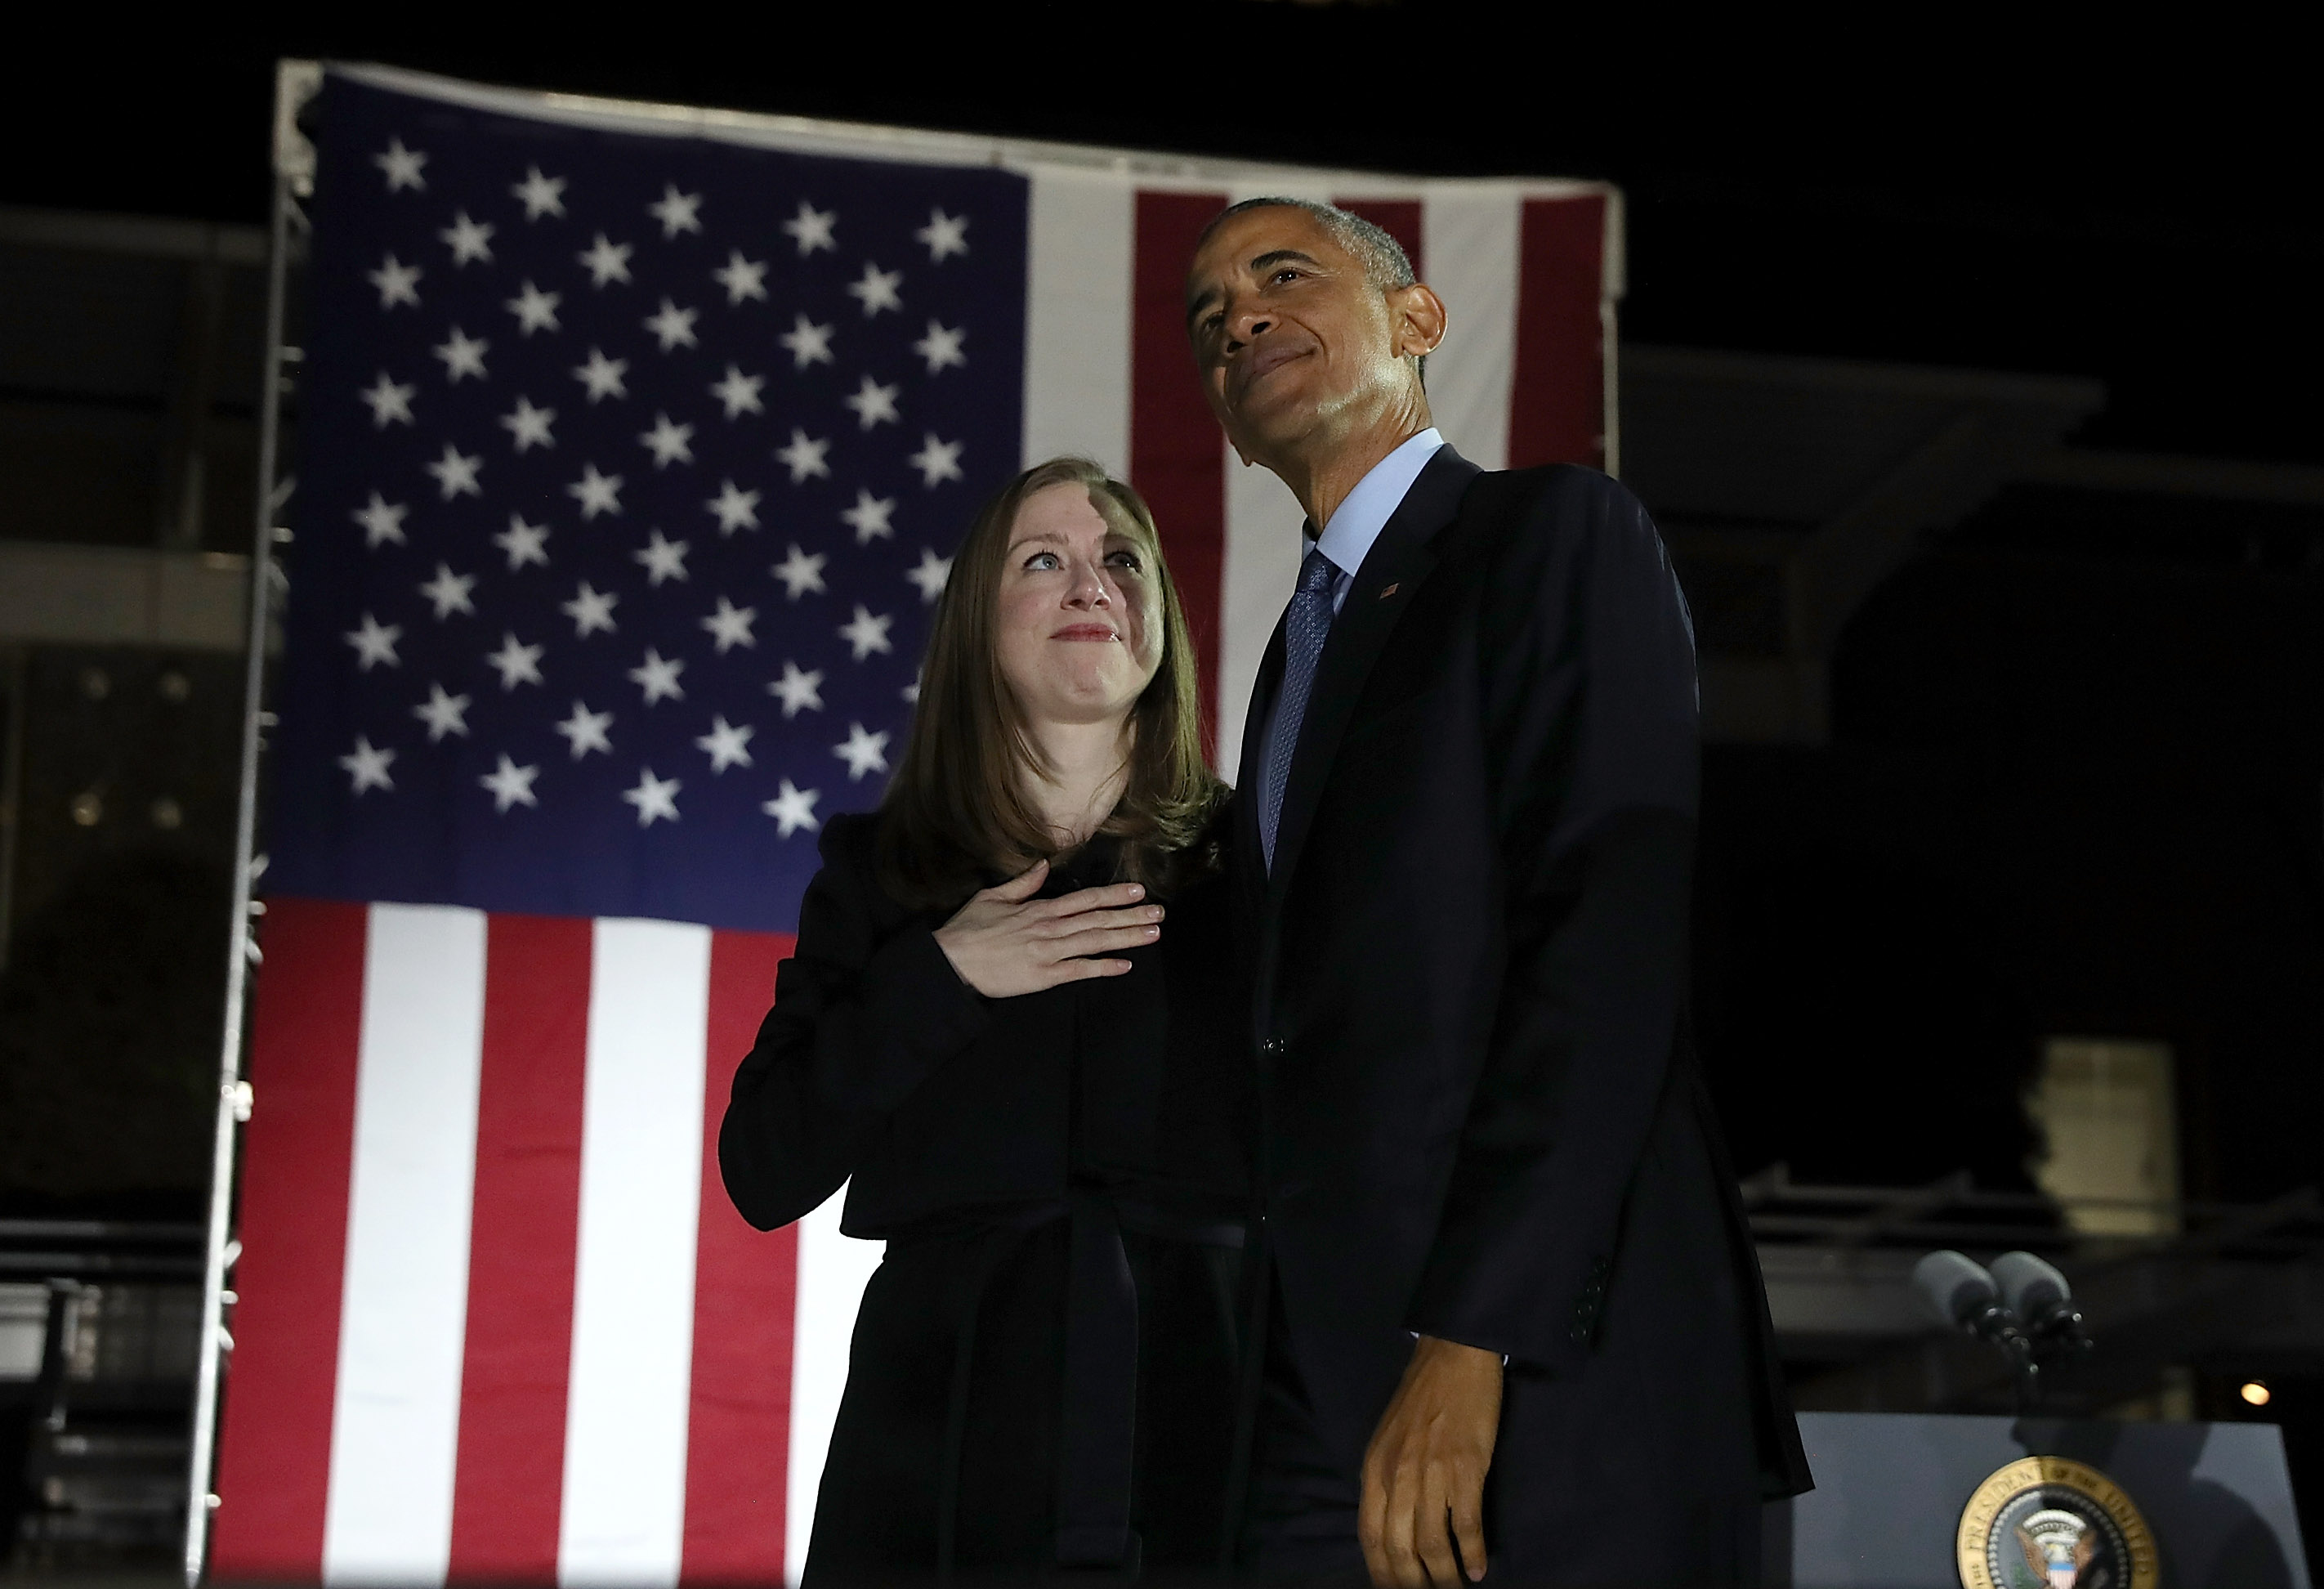 Chelsea Clinton and U.S. President Barack Obama greet supporters during a campaign rally with Democratic presidential nominee former Secretary of State Hillary Clinton on November 7, 2016, in Philadelphia Pennsylvania. (Getty Images)